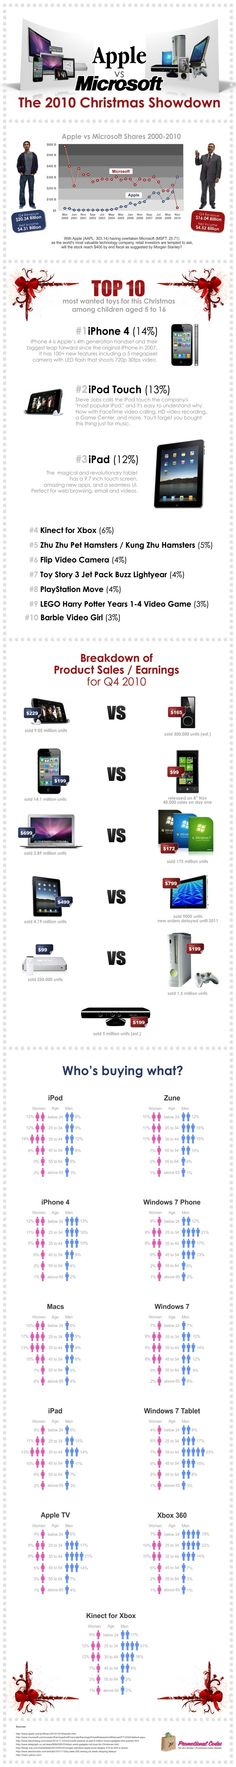 Apple Versus Microsoft: The 2010 Christmas Showdown